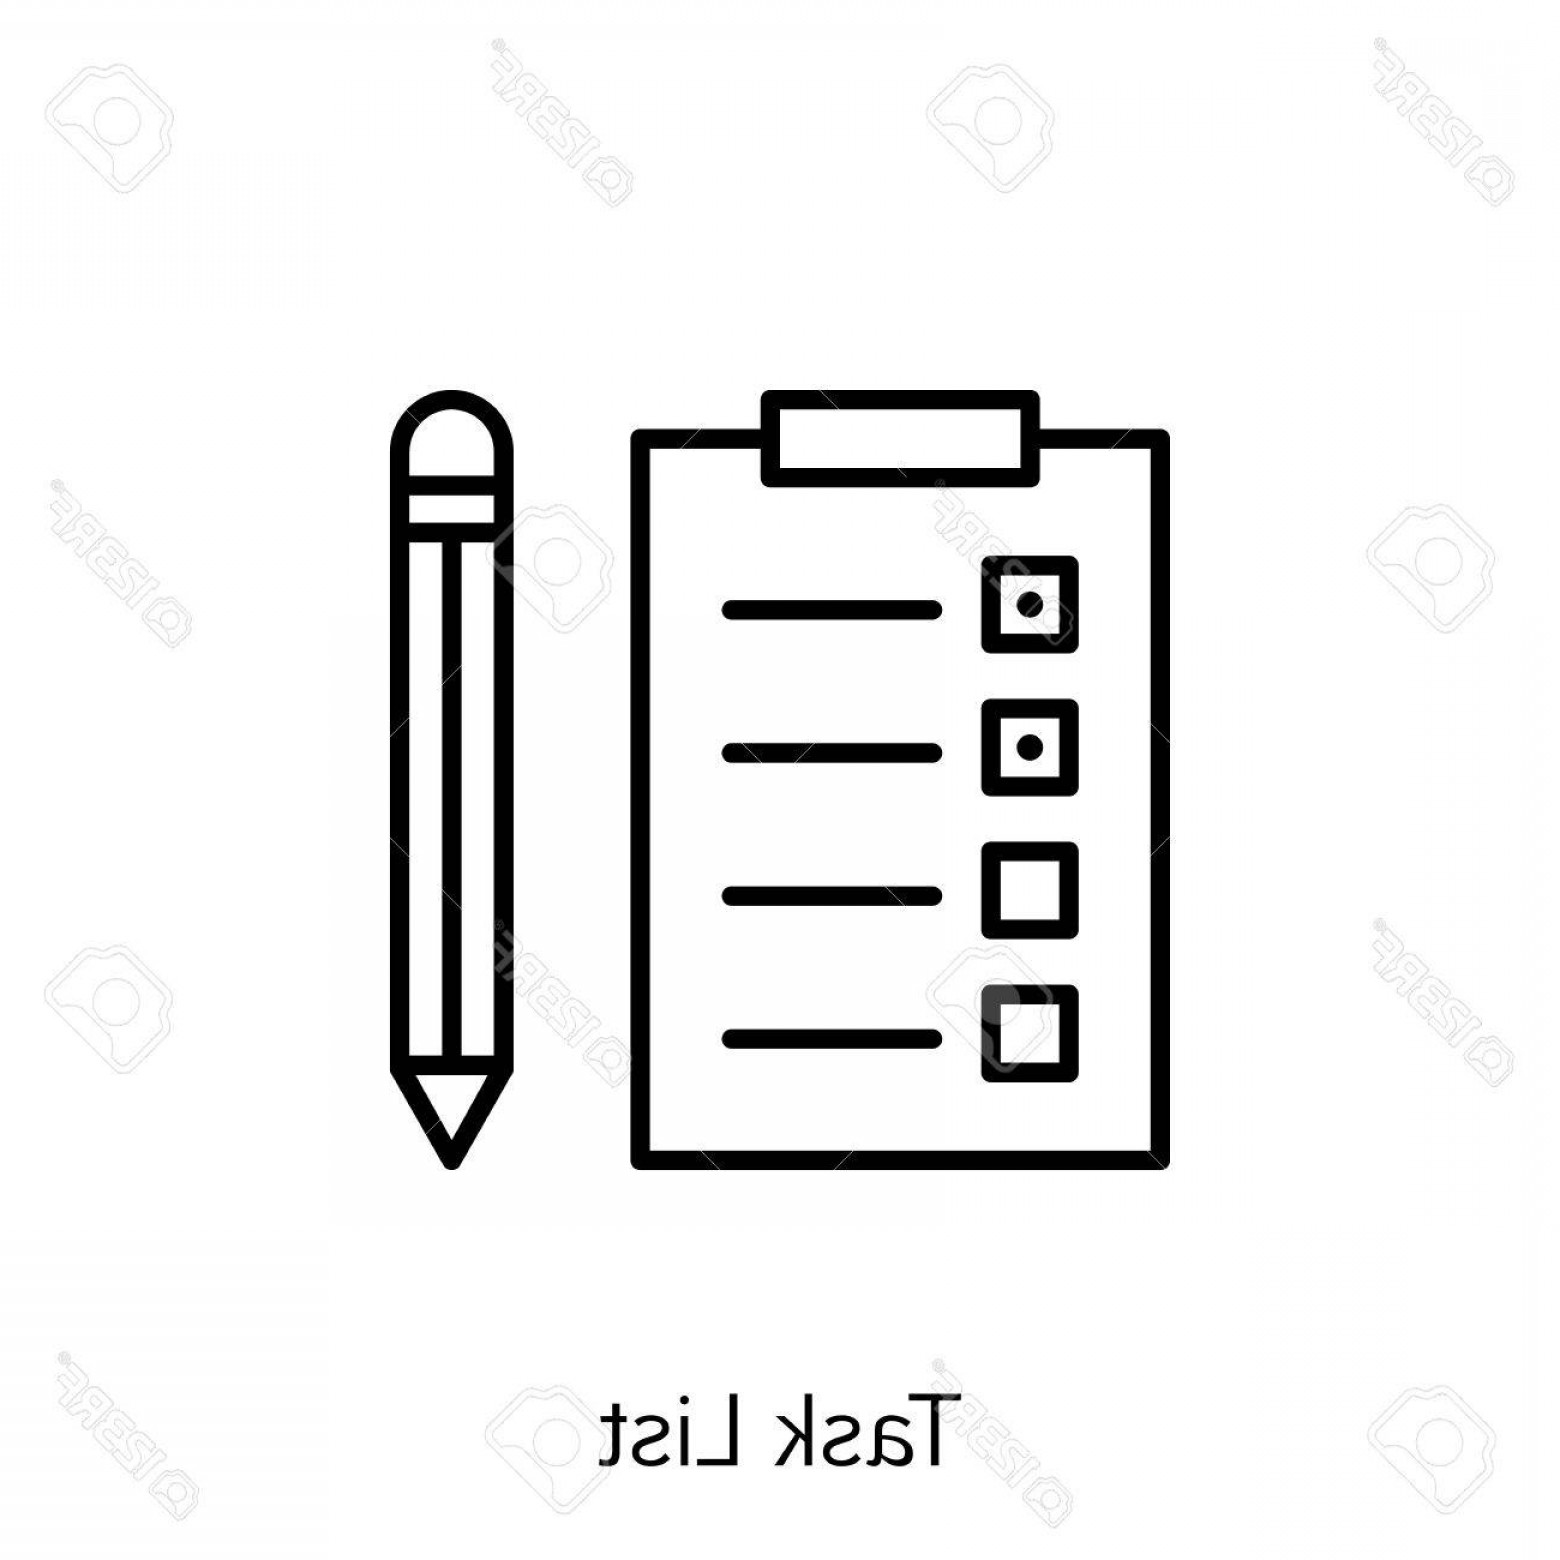 Art Project Icon Vector: Photostock Vector Vector Illustration Of Project Management Icon On Task List And Reminder In Trendy Flat Style Projec